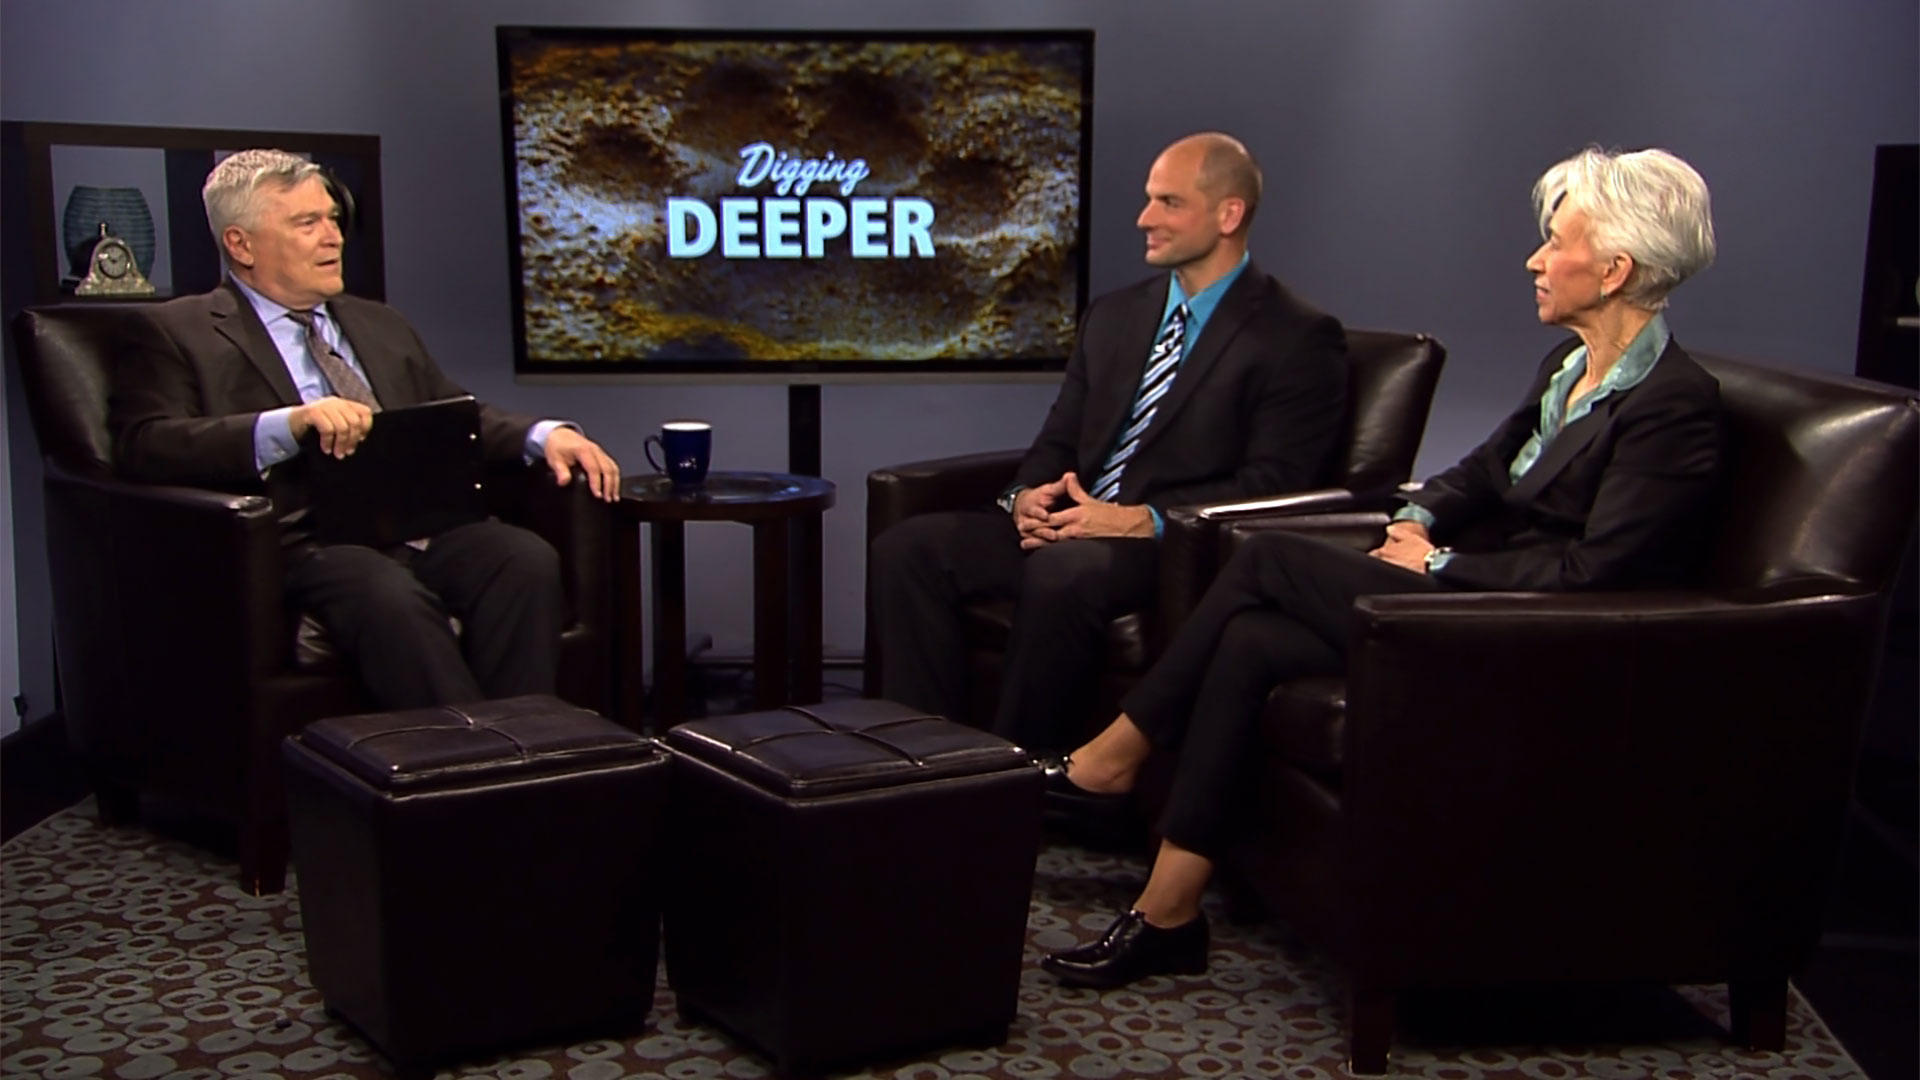 Eric Barron and guests on the set of Digging Deeper